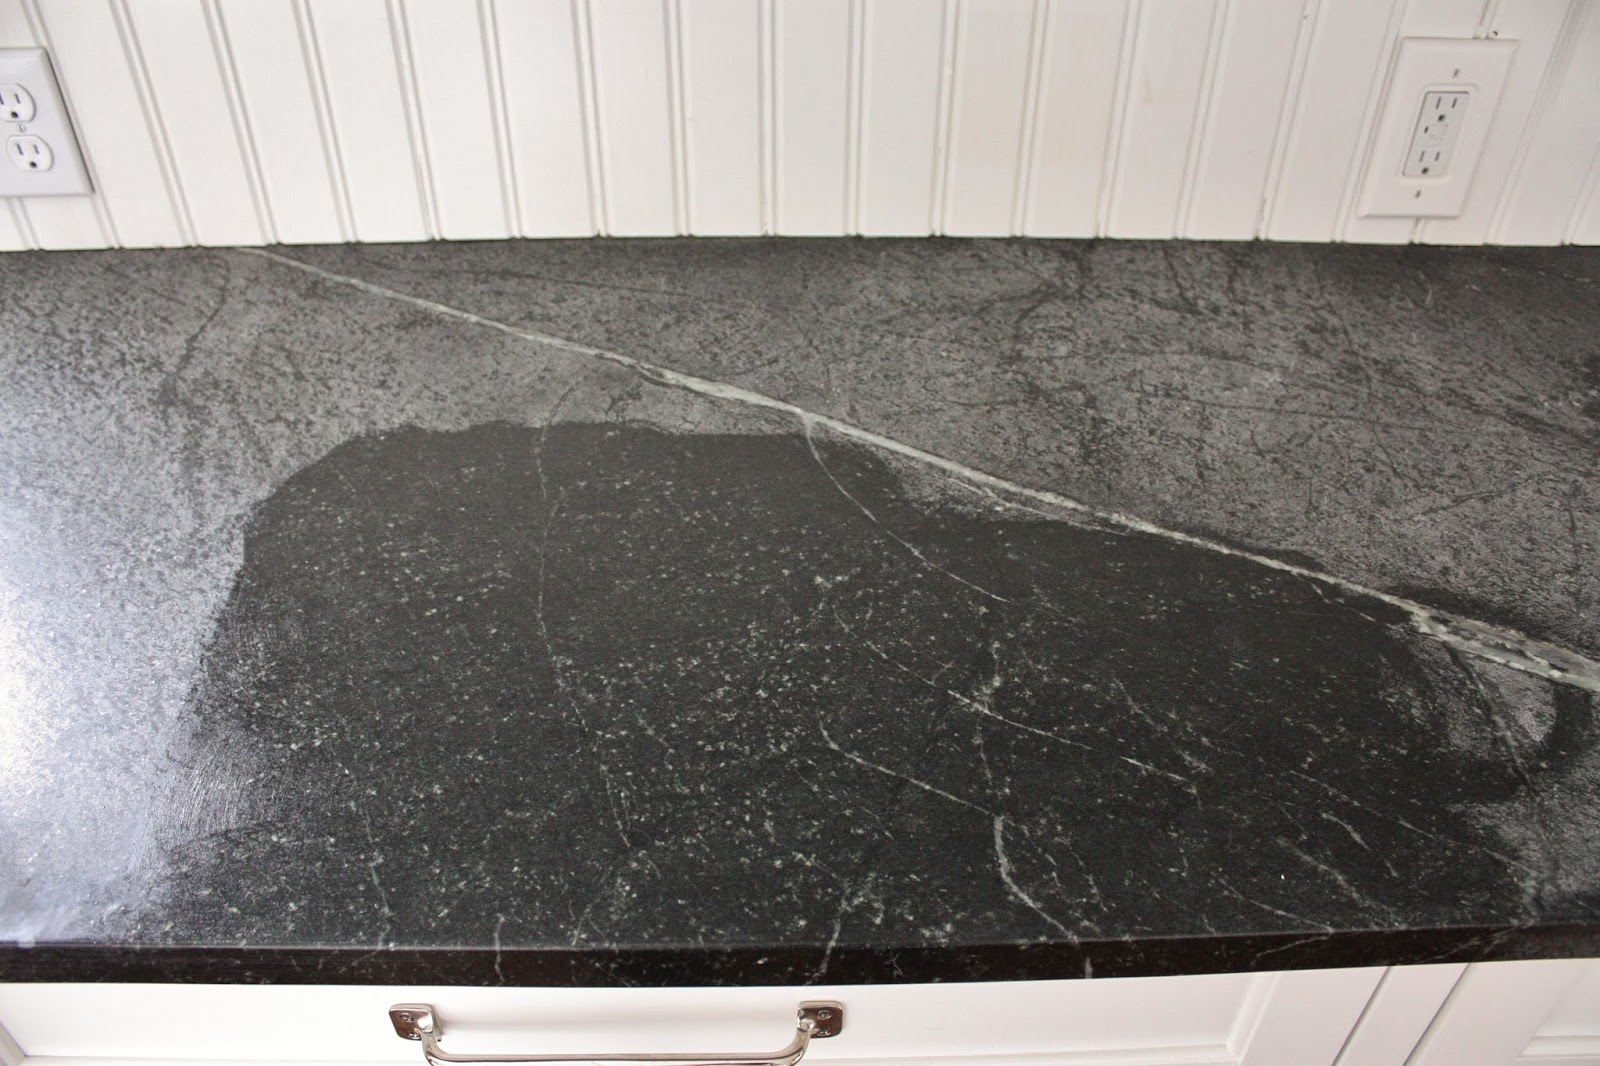 for the of a house: Soapstone... Grey Soapstone Countertops on grey crushed granite, grey ceramic countertops, home depot formica countertops, granite countertops, quartz countertops, white countertops, grey black countertops, grey stone countertops, grey marble, slate countertops, lowe's bathroom cabinets and countertops, grey samples, grey quartz, grey wood countertops, grey bathroom countertops, grey limestone countertops, grey corian, grey obsidian countertops, gray marble countertops, grey leather granite,